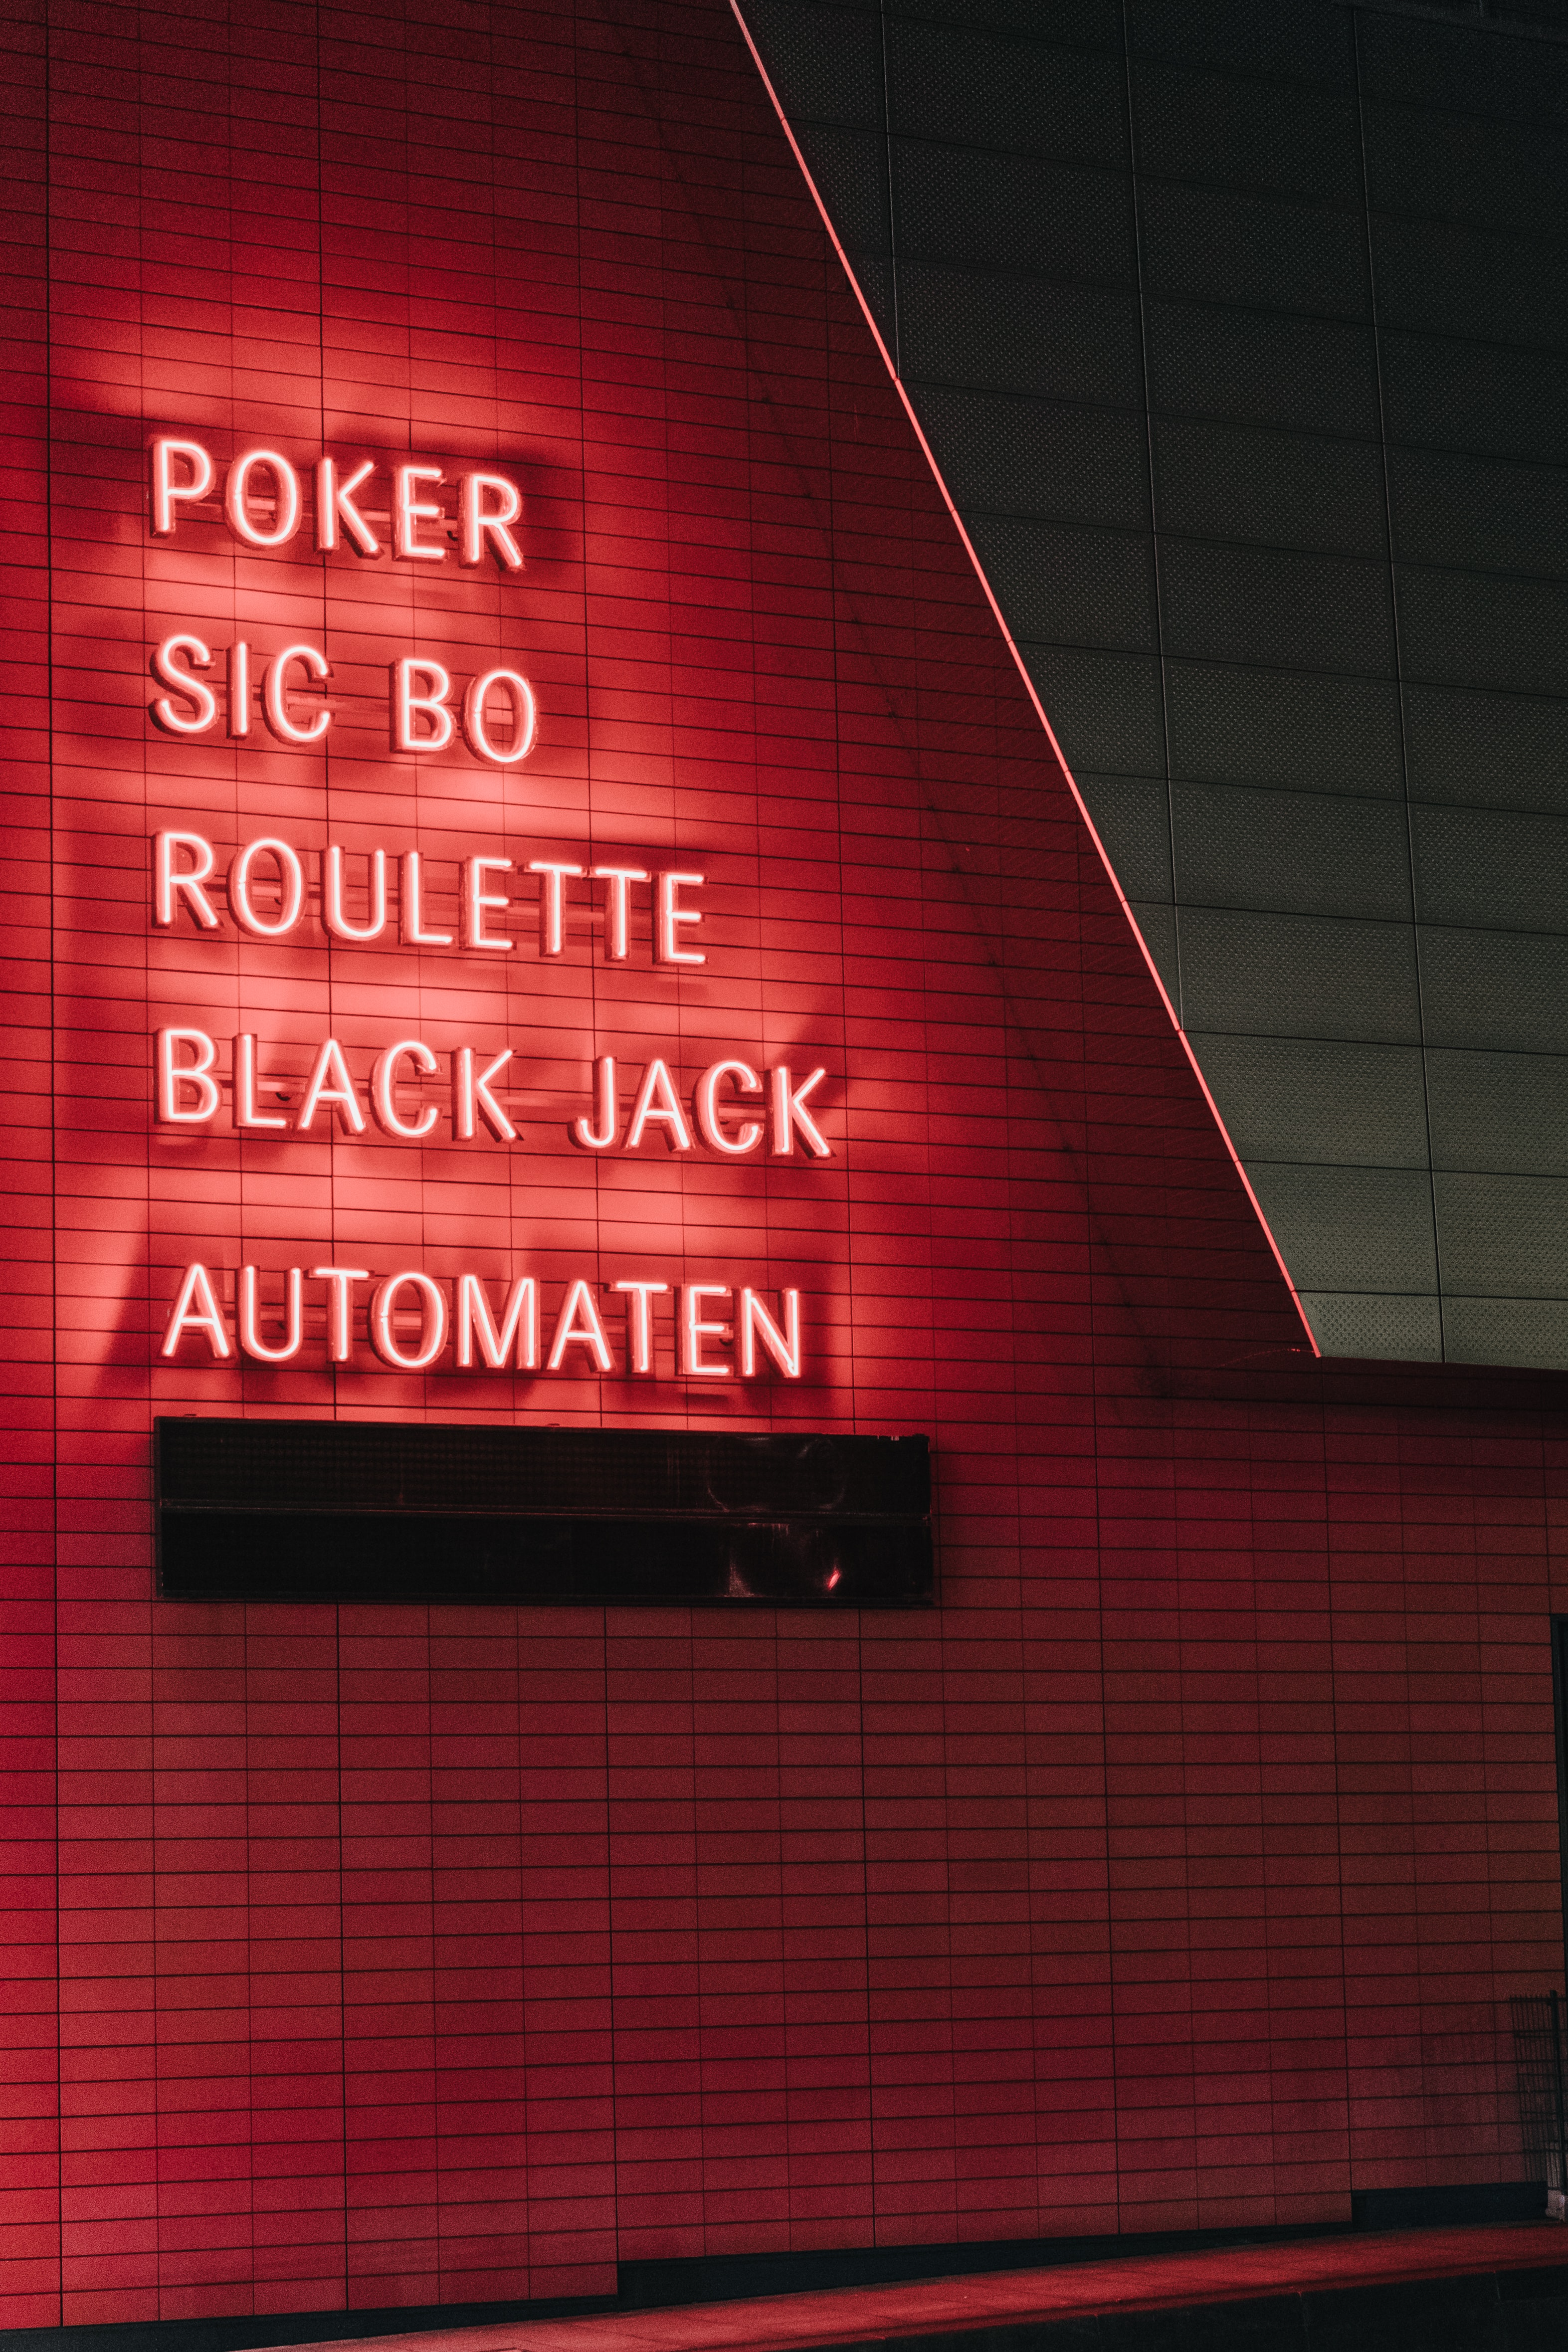 lighted Poker sic bo roulette black jack automaten neon lights